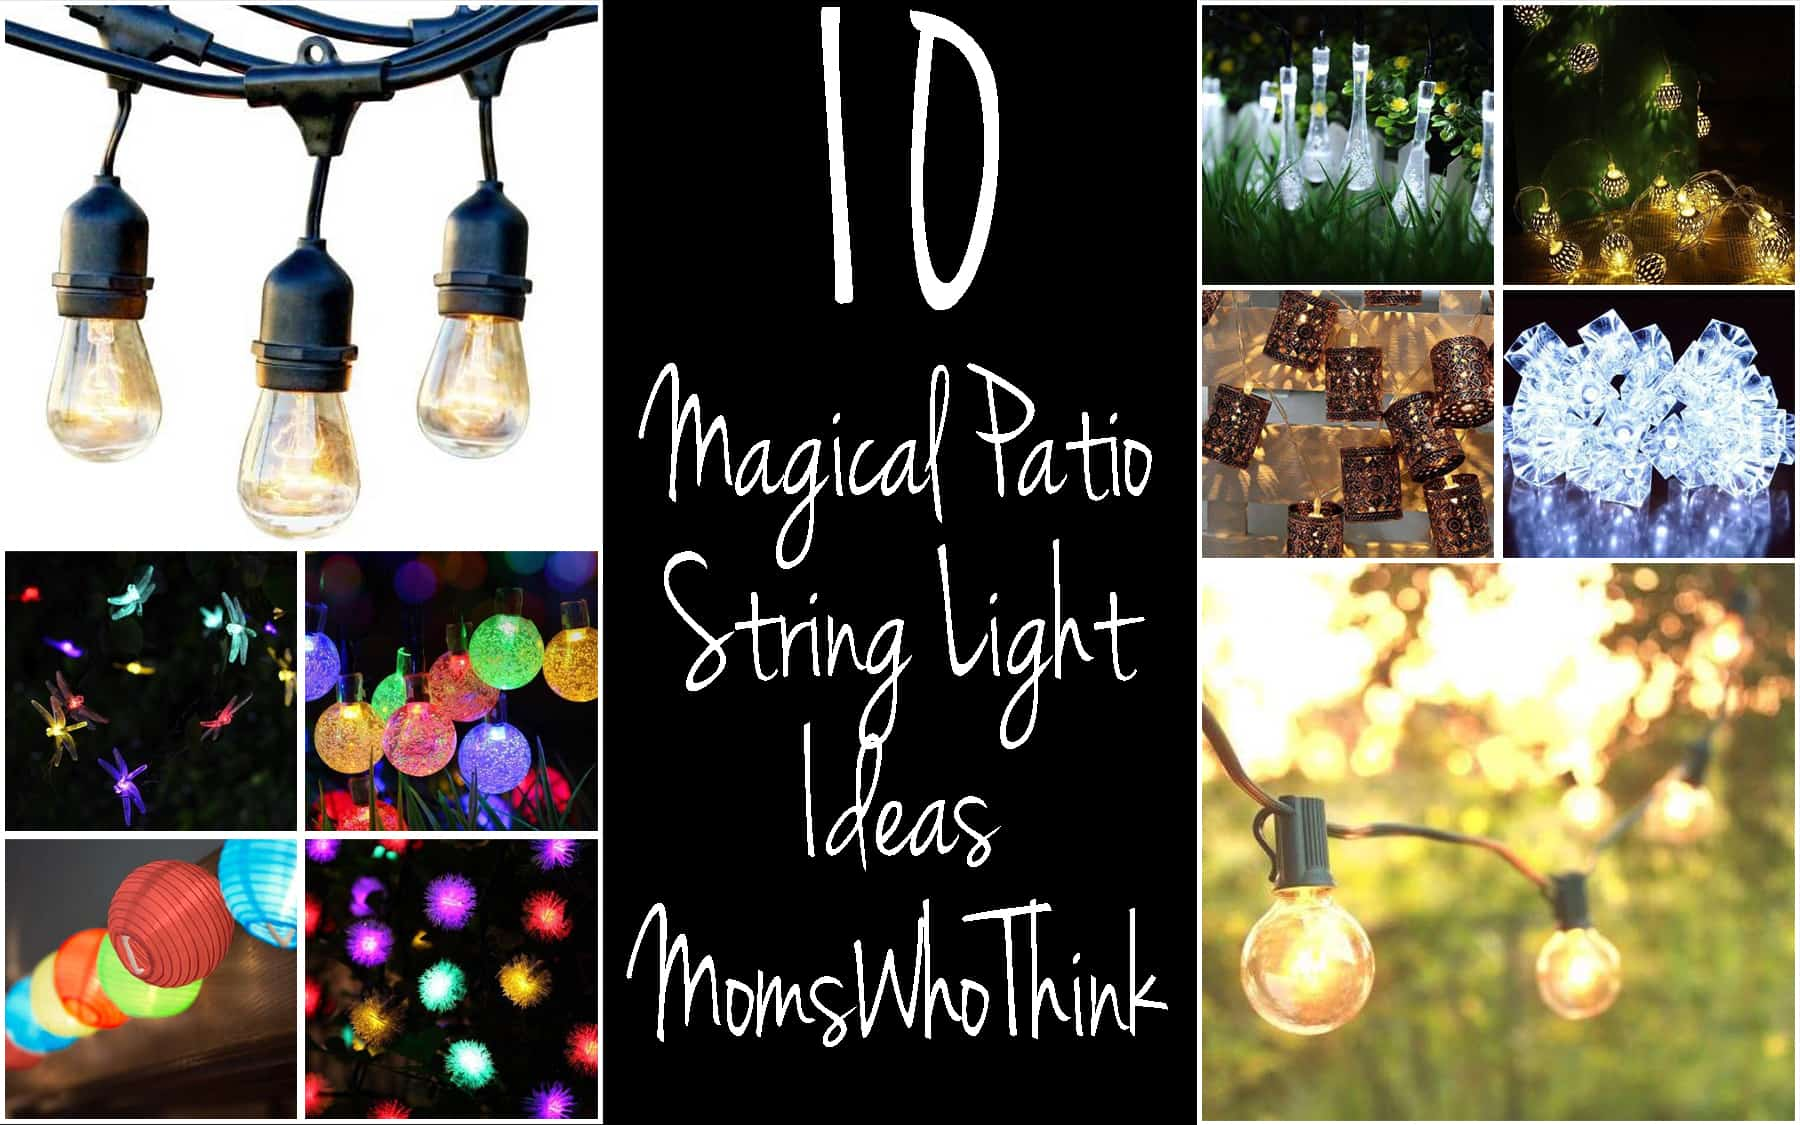 Magical Patio String Lights